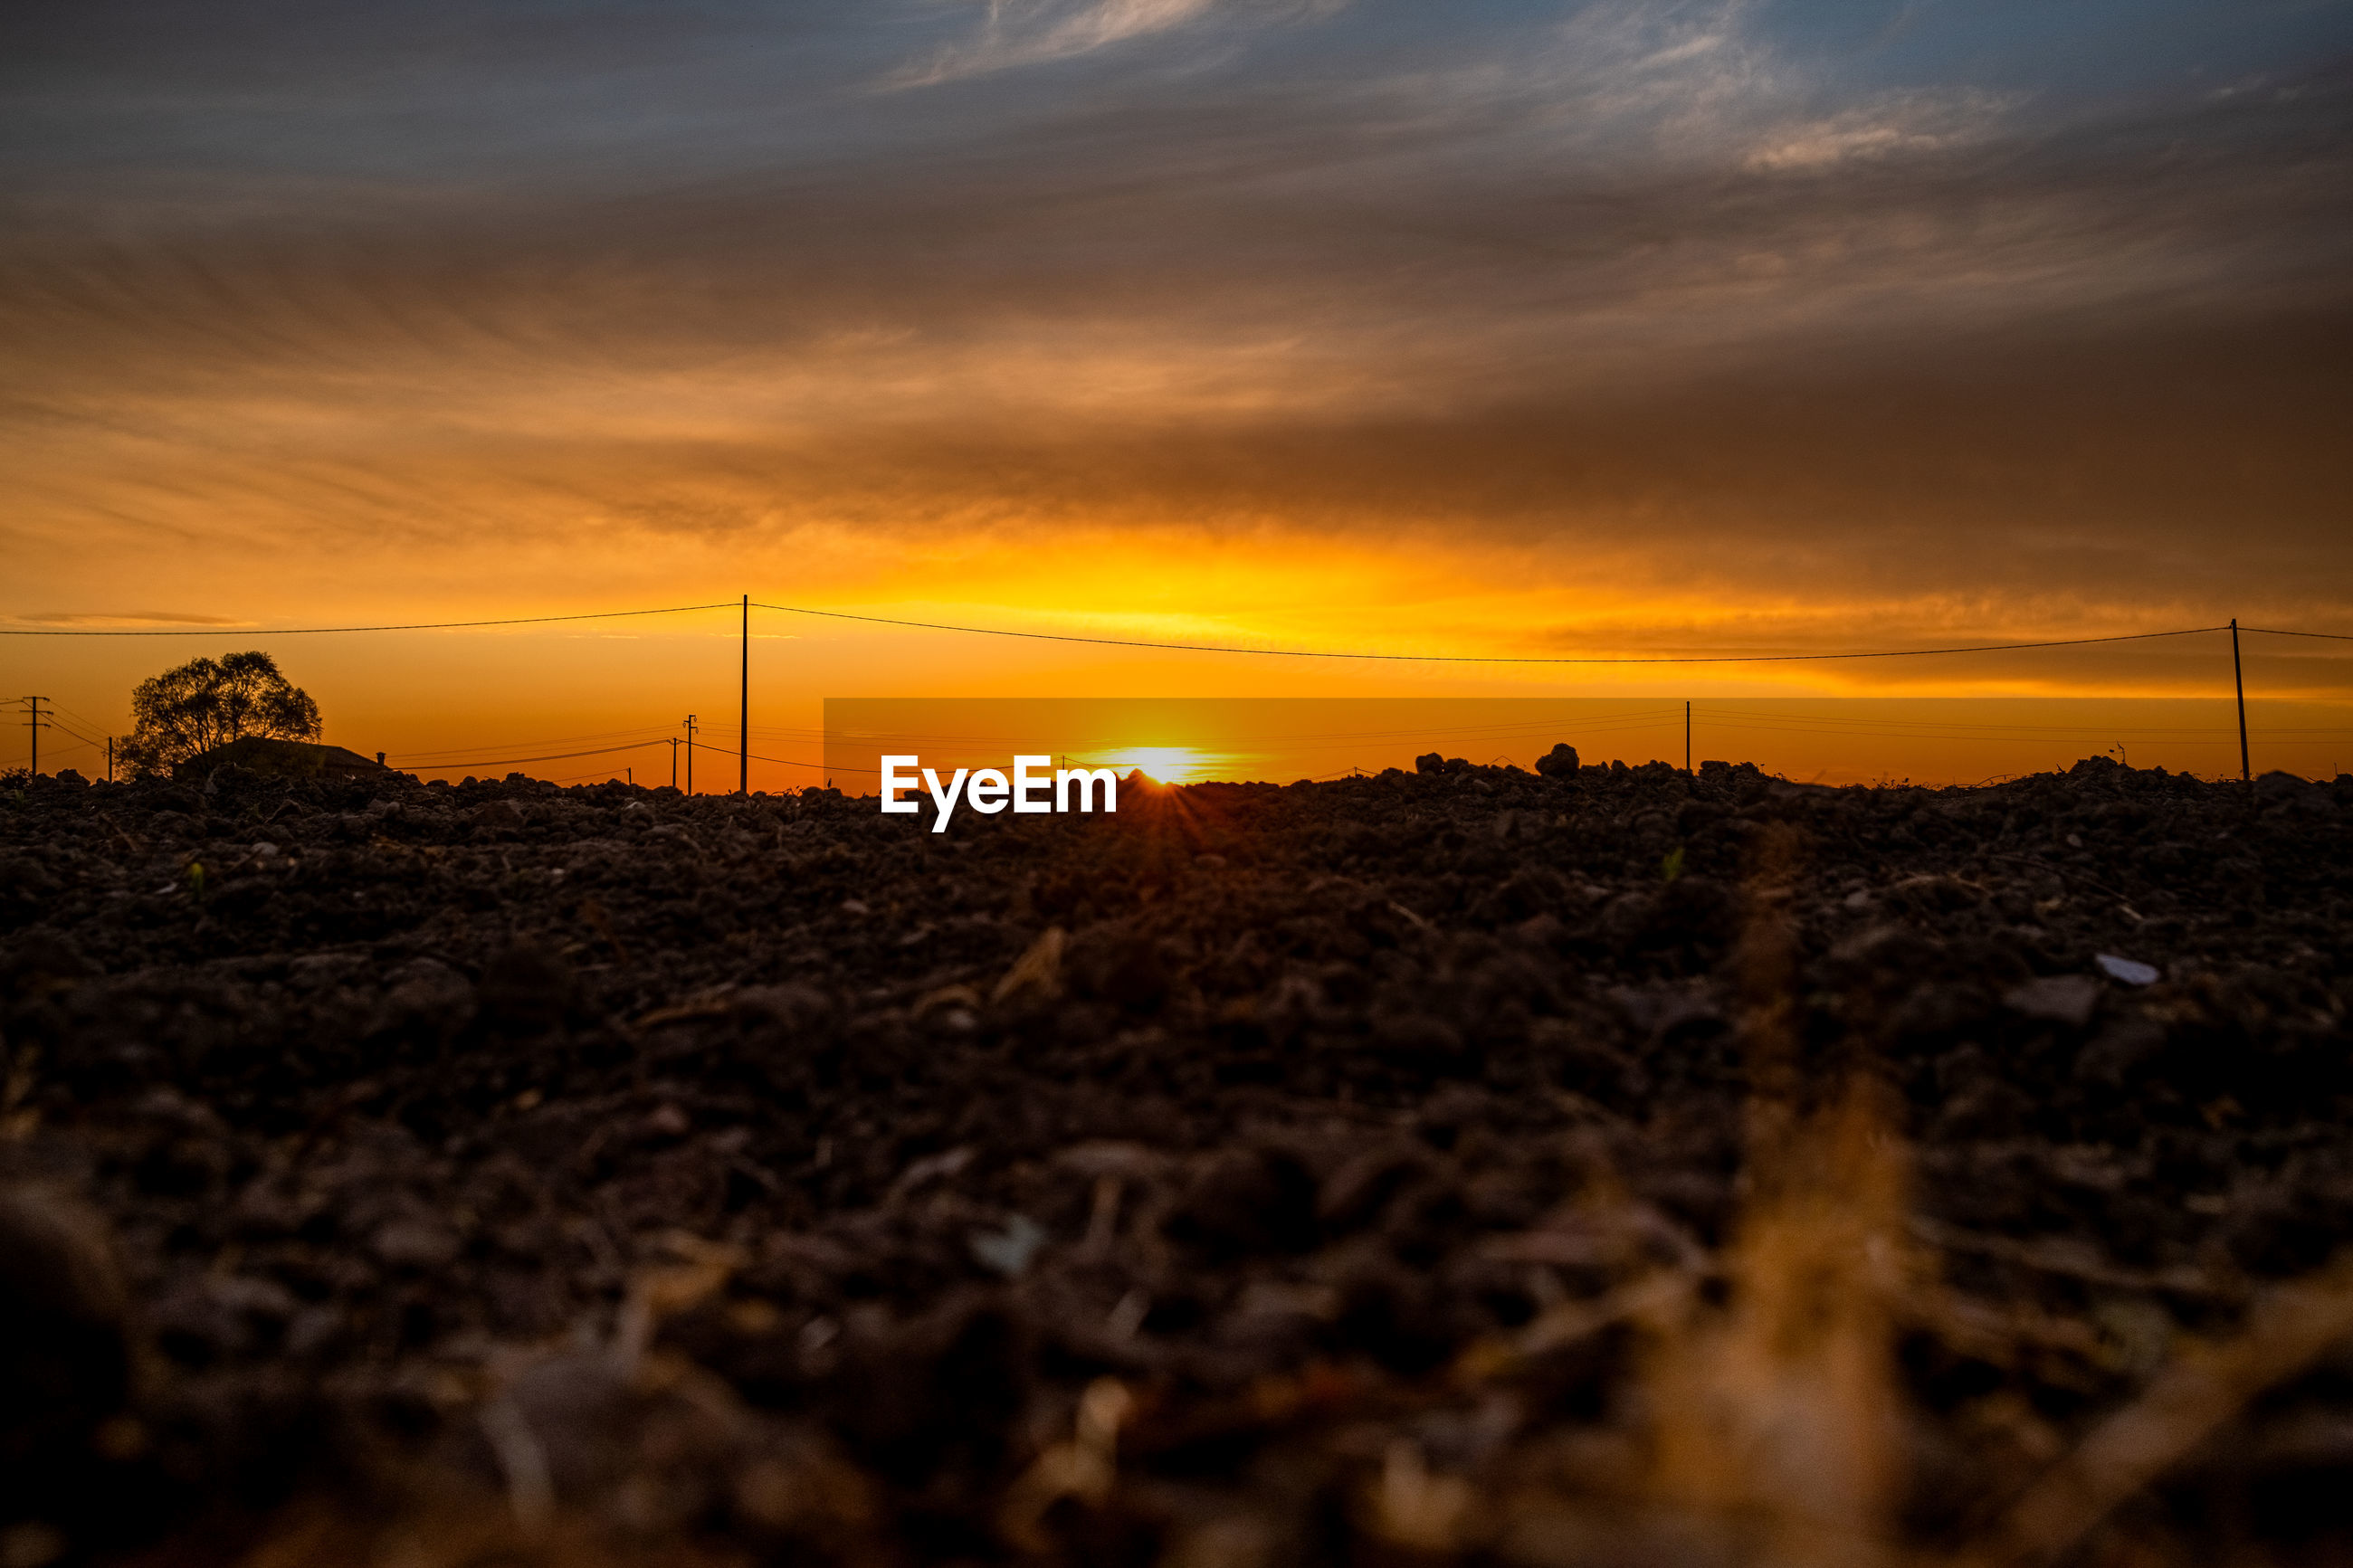 SCENIC VIEW OF FIELD DURING SUNSET